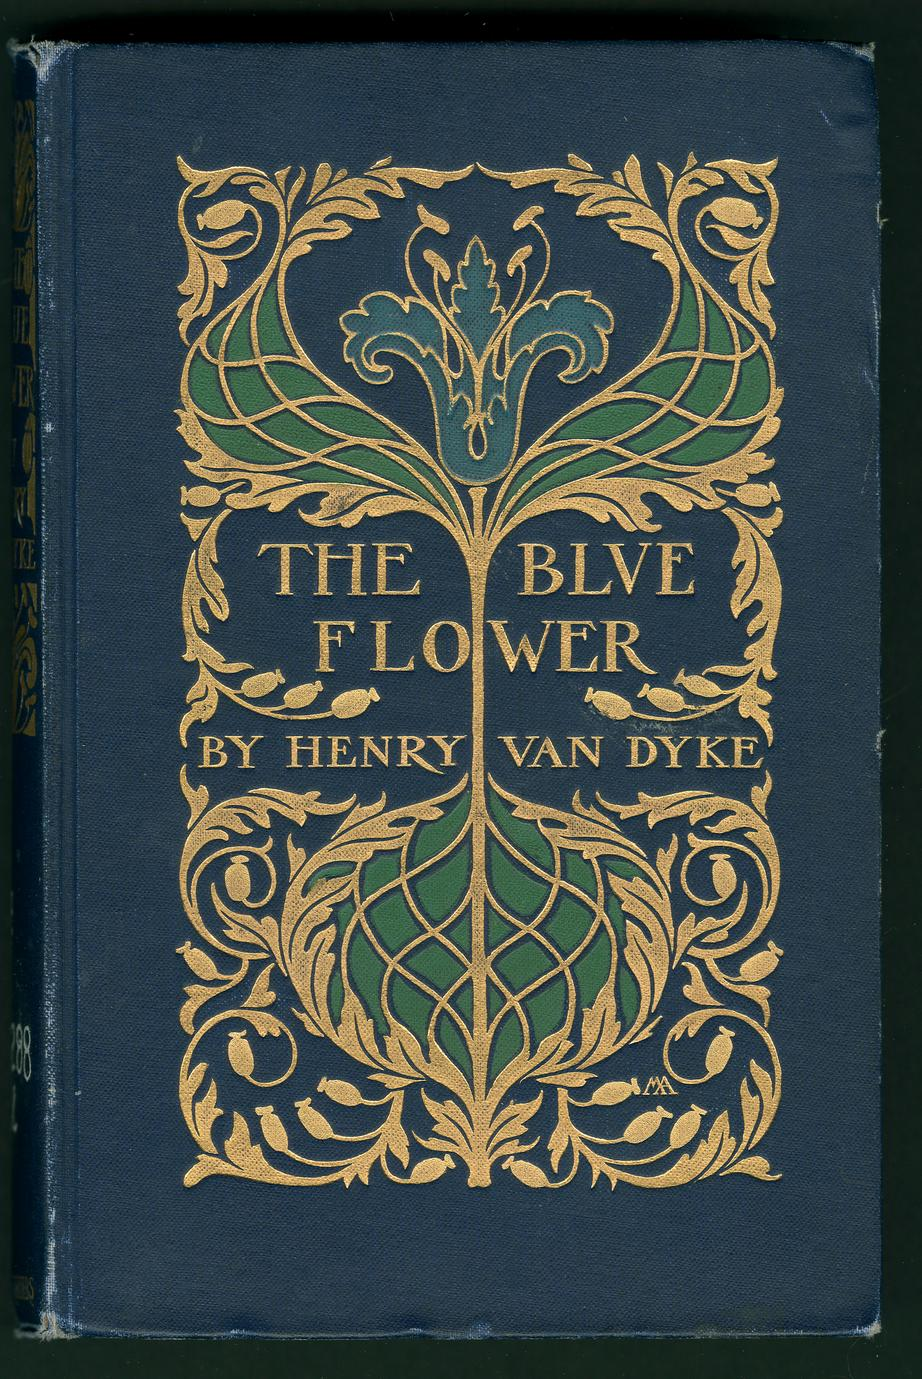 The blue flower (1 of 2)